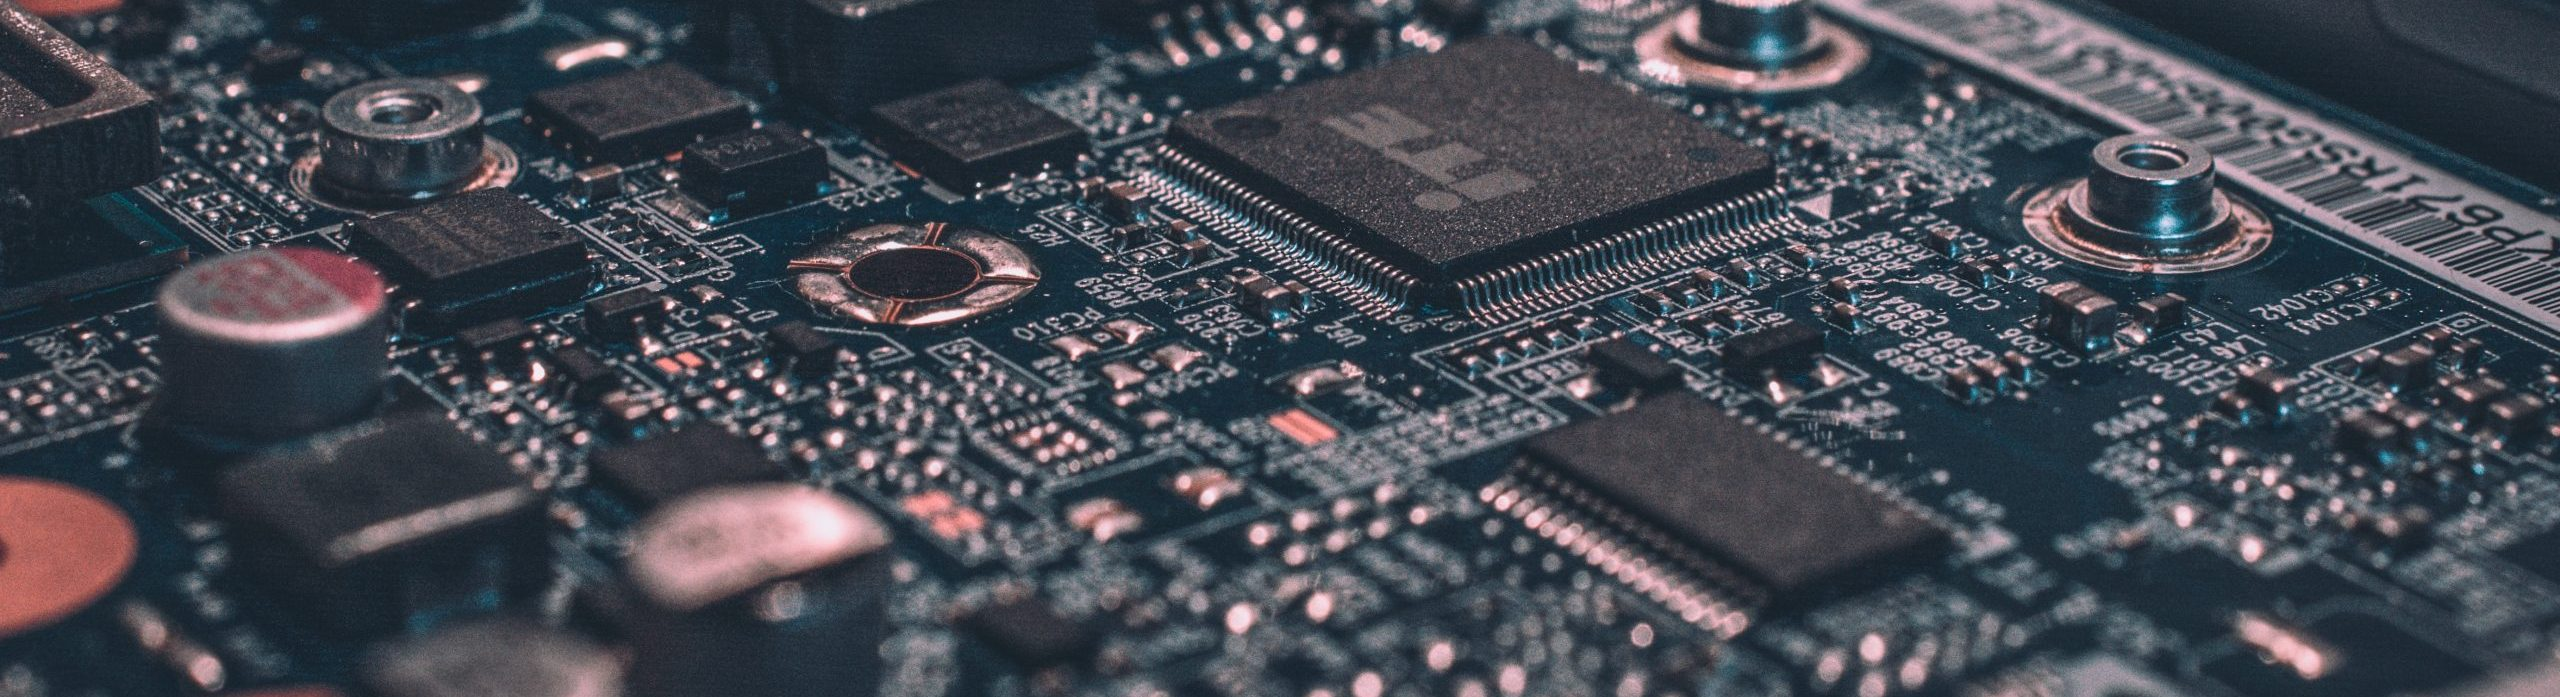 Internet of Things & Embedded Systems